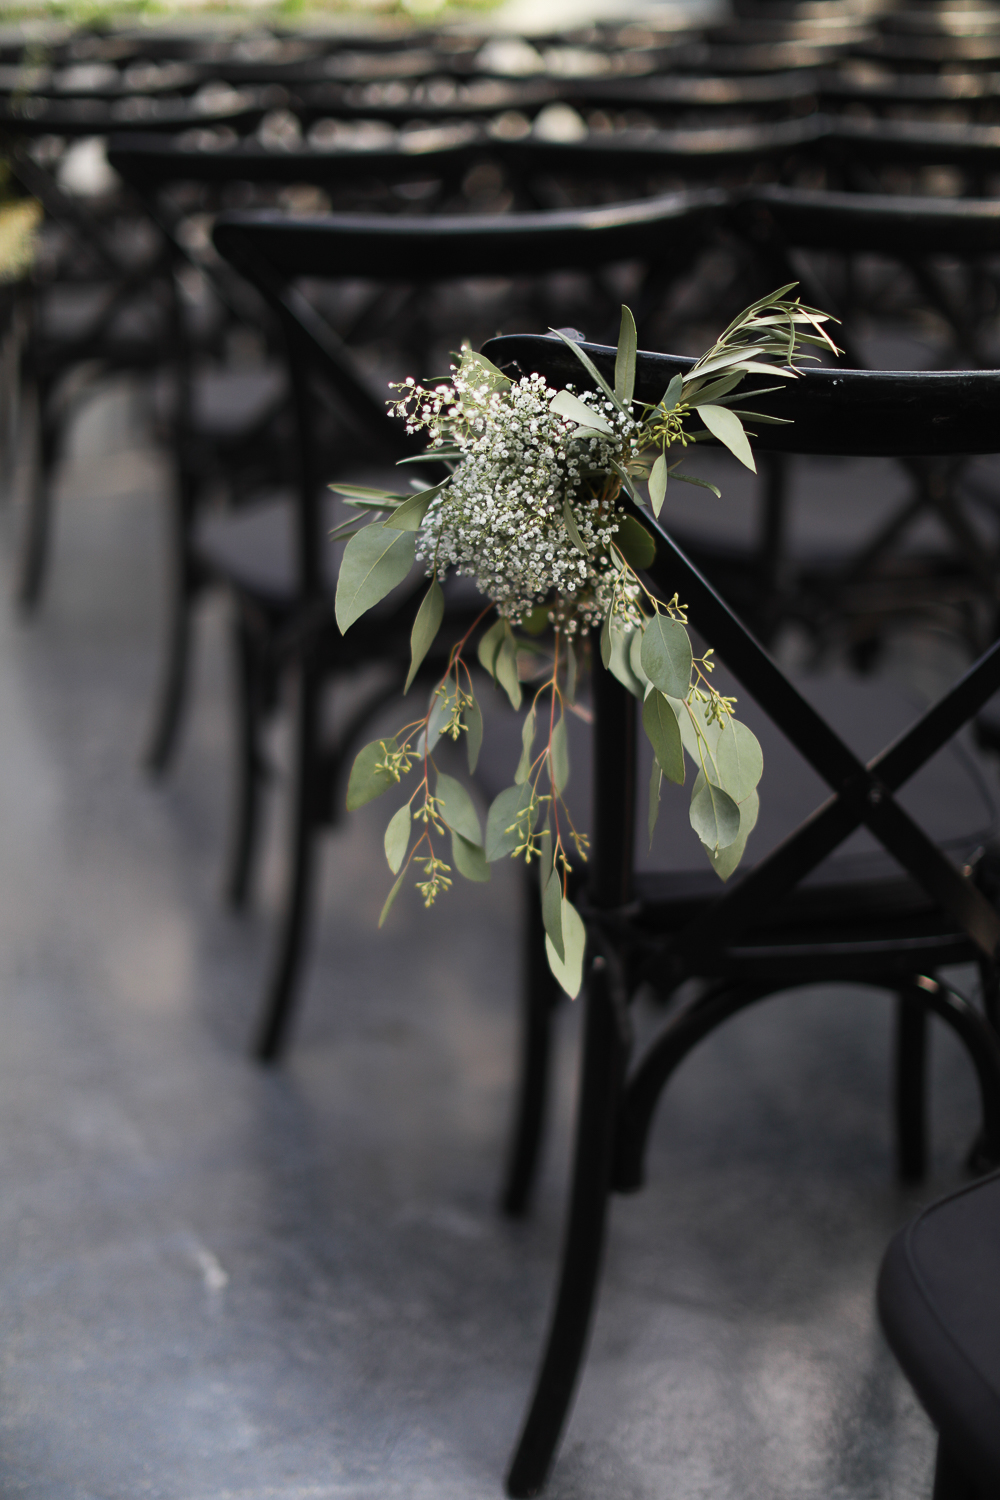 Natural embellishments on wedding chairs at a Brooklyn wedding - 501 Union Wedding Photos in Brooklyn - Luna & Tom's Wedding